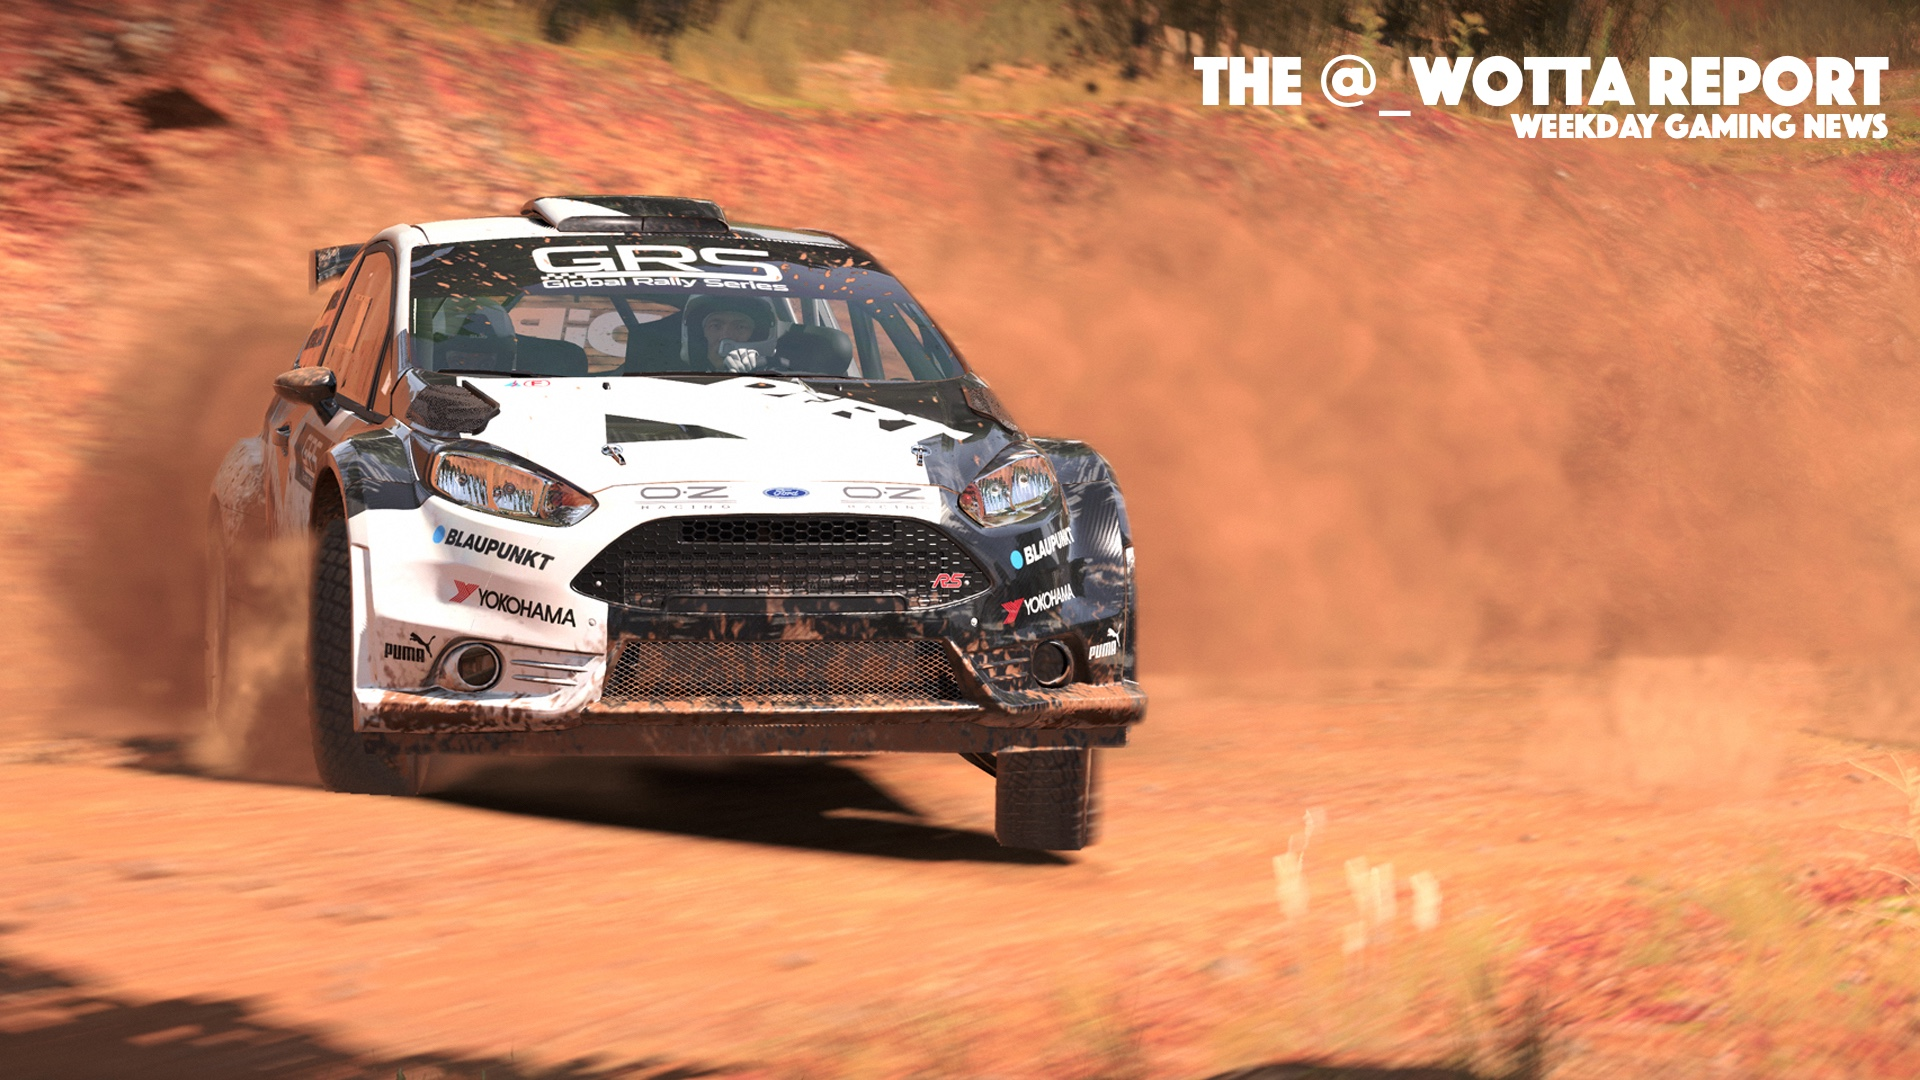 The @_wotta Report – DiRT 4 Day One and Special Editions announced | Weekday Gaming News